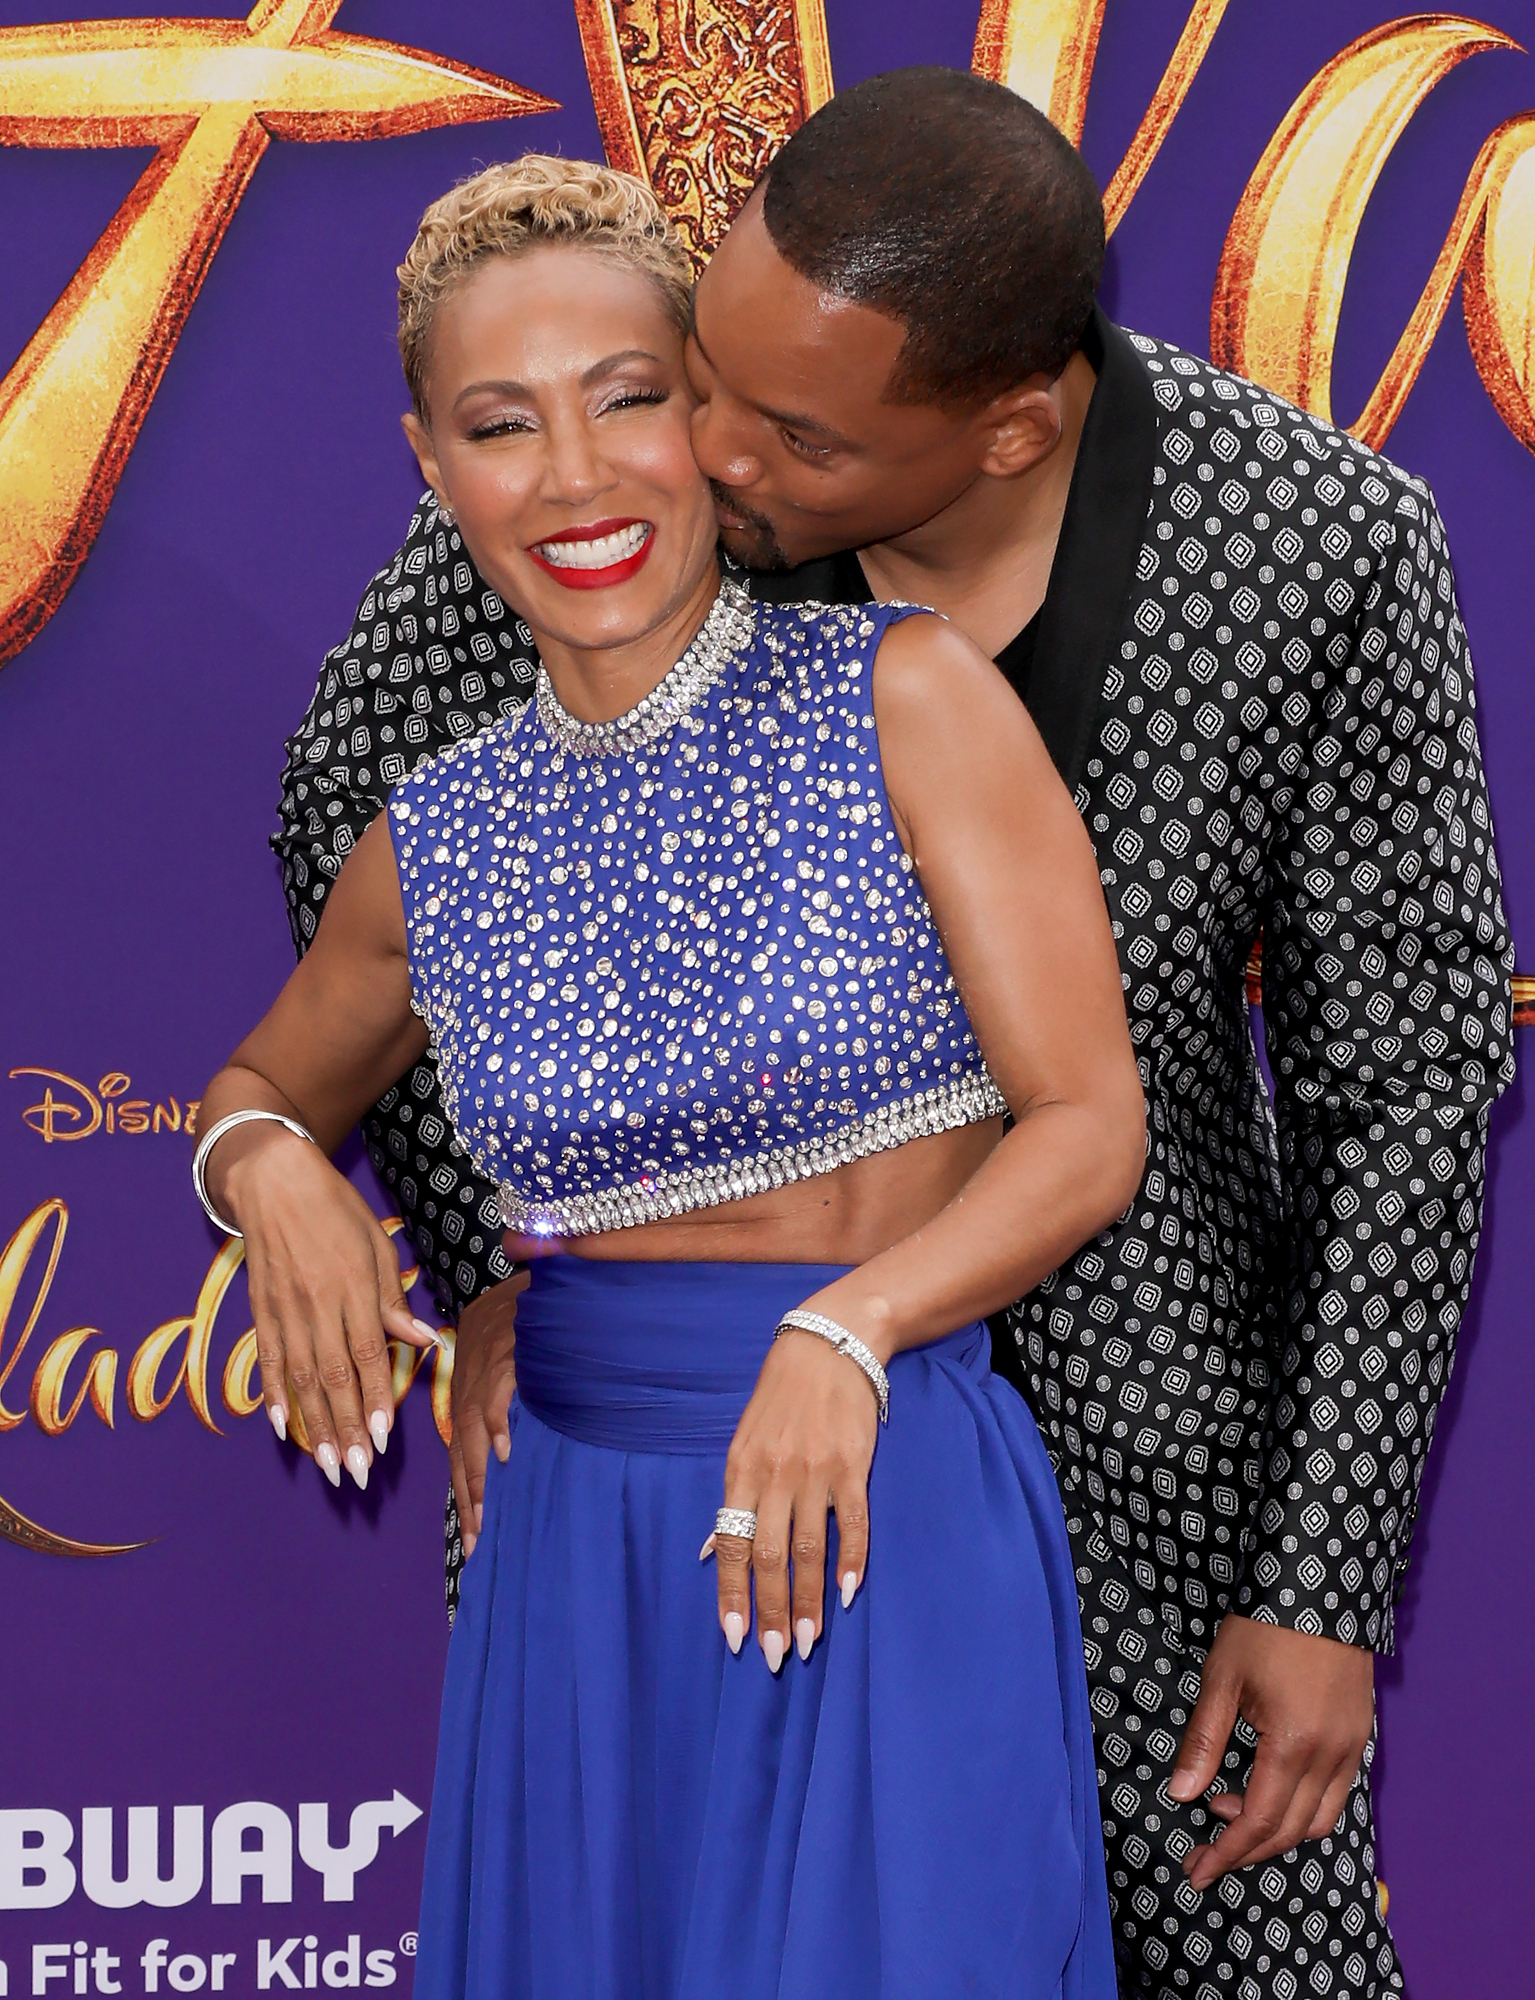 Jada-Pinkett-Smith-Will-Aladdin-premiere - Jada lit up as Will leaned in for a kiss.